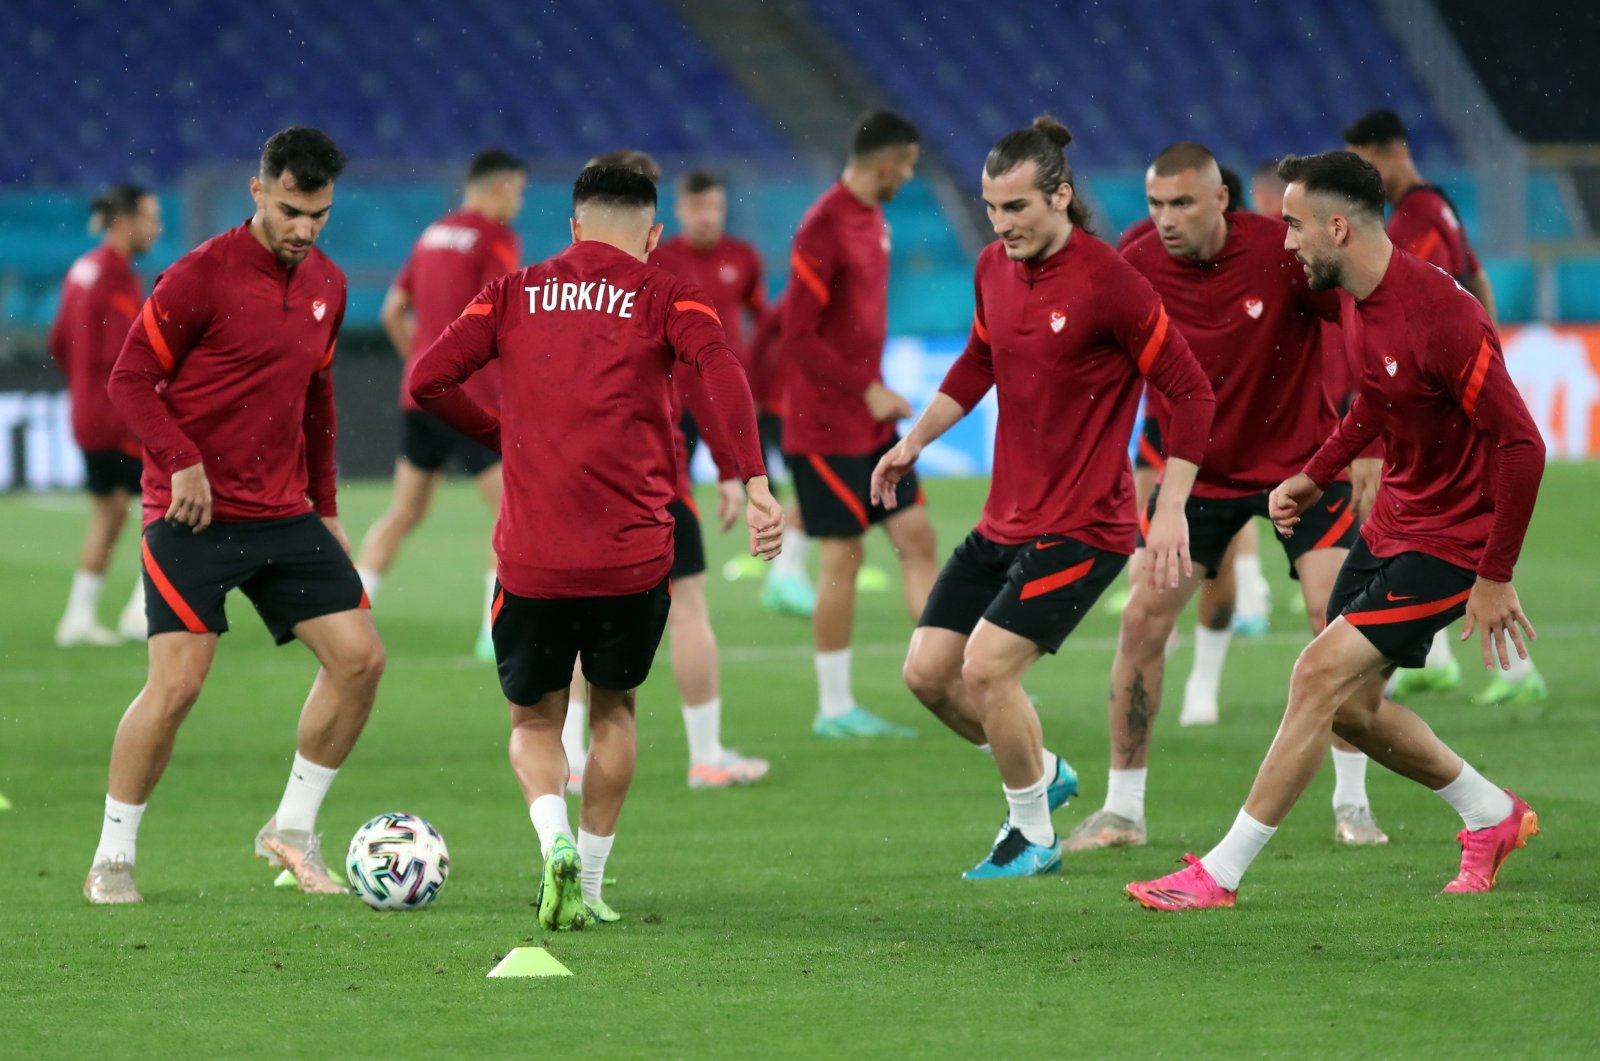 Turkish national football team players attend a training session at the Olympic Stadium, Rome, France, June 10, 2021. (IHA Photo)